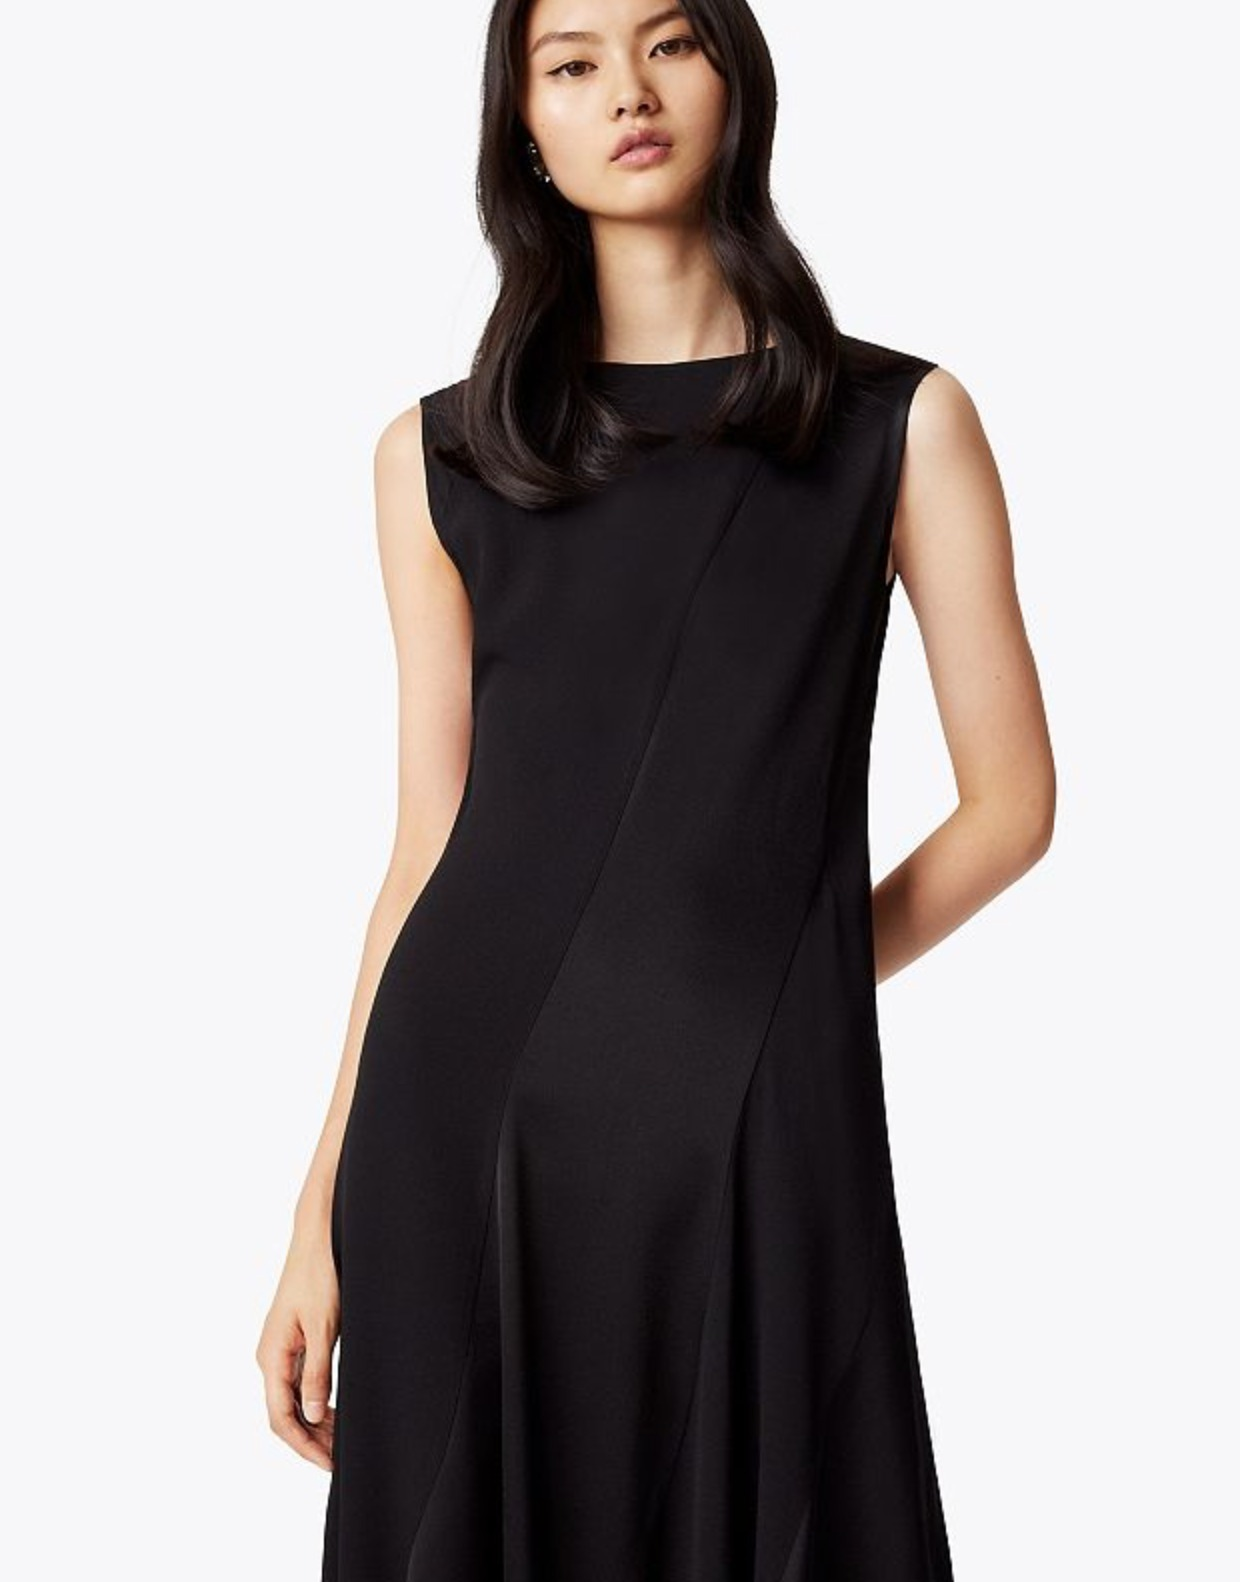 Tory Burch HAILEE DRESS